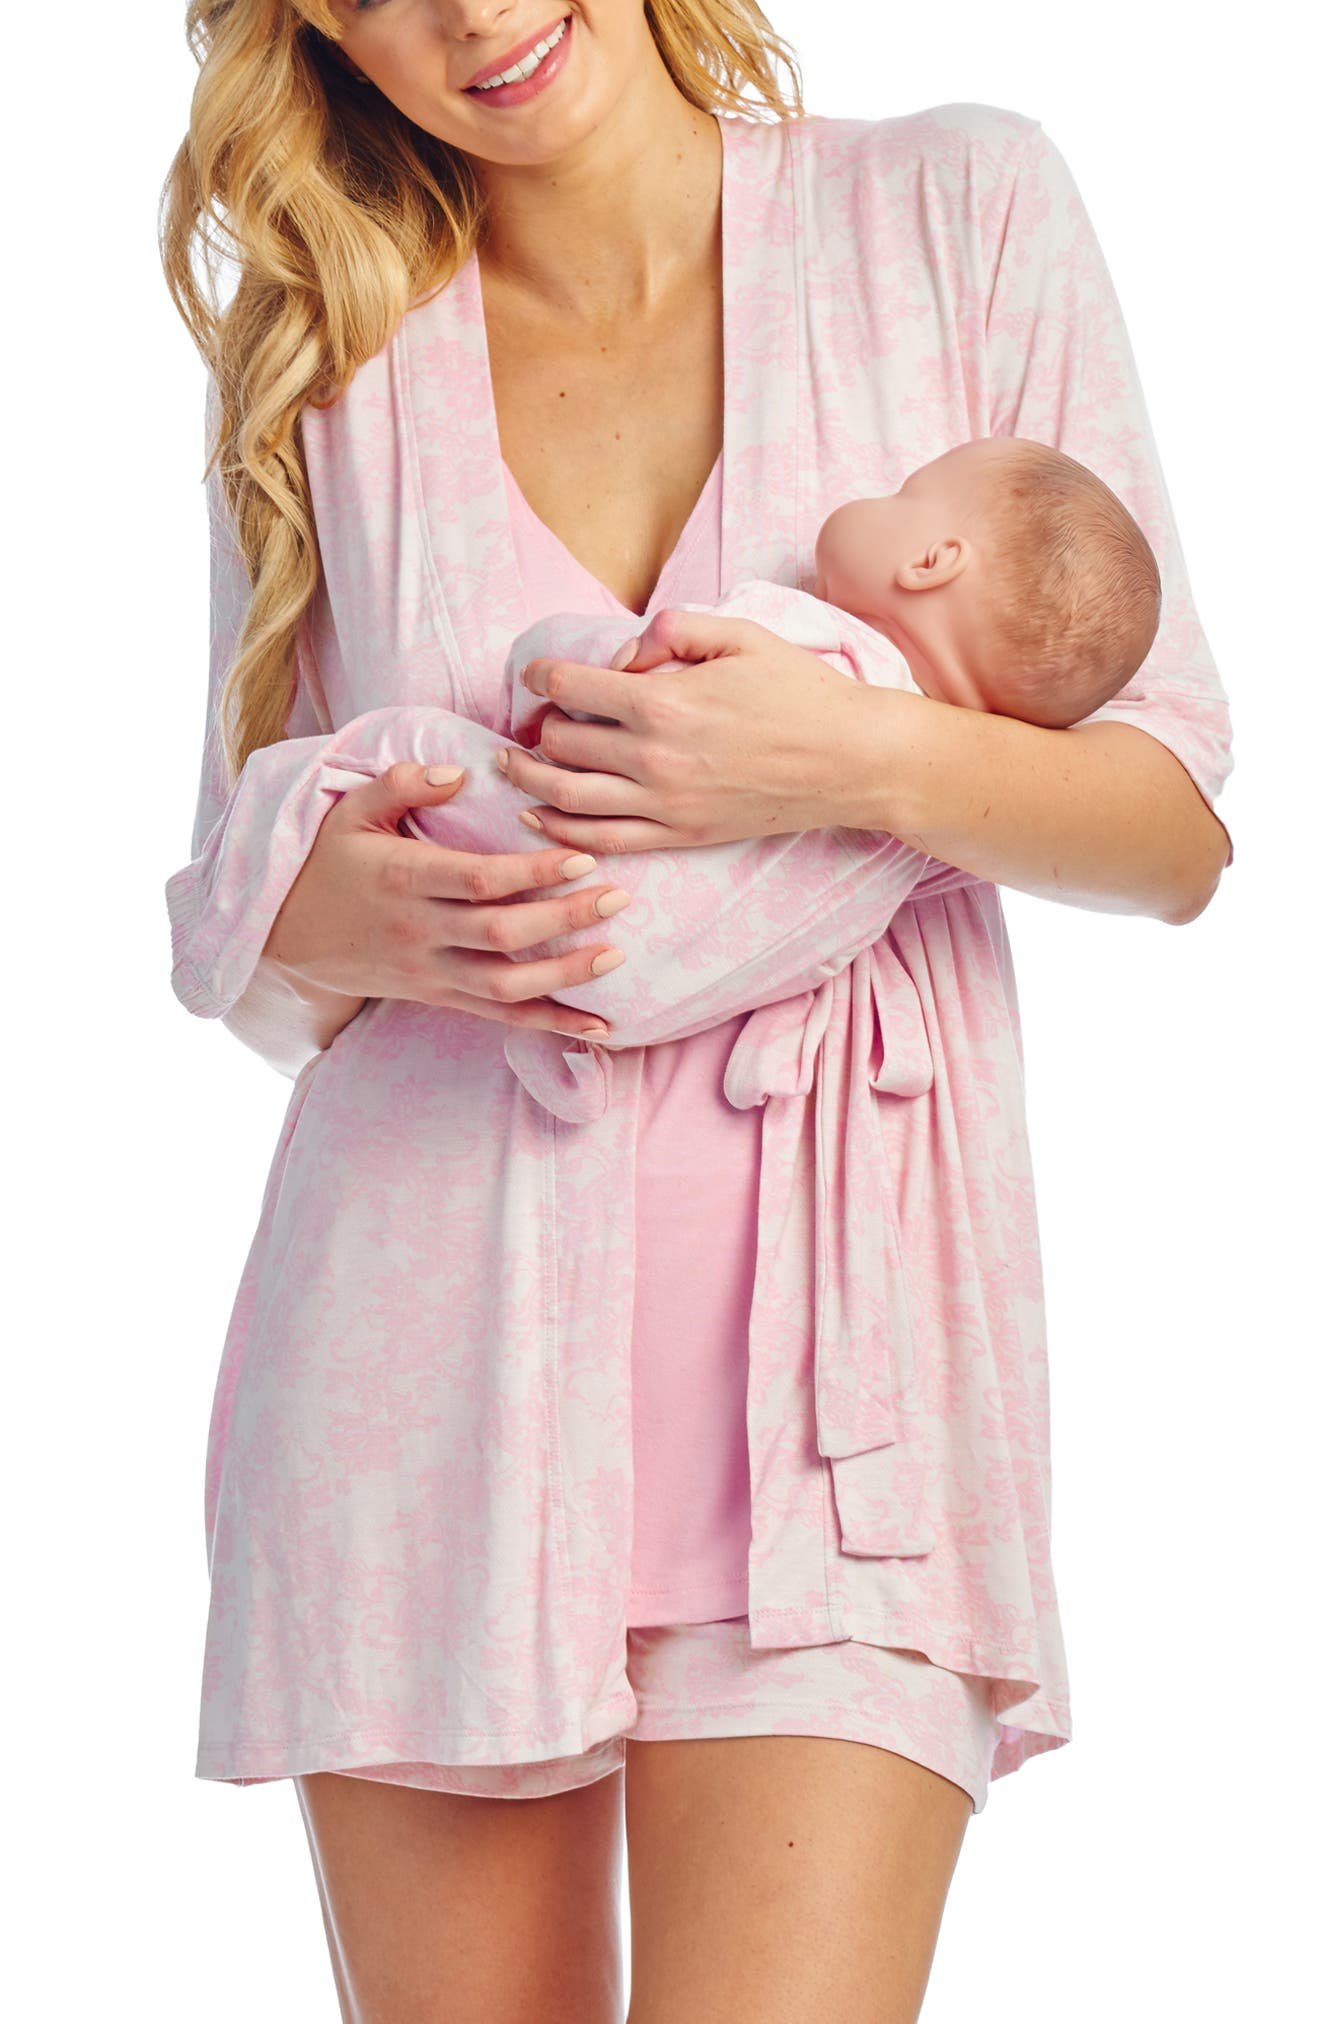 Everly Grey Adalia 5-Piece Maternity/nursing Pajama Set, Pink